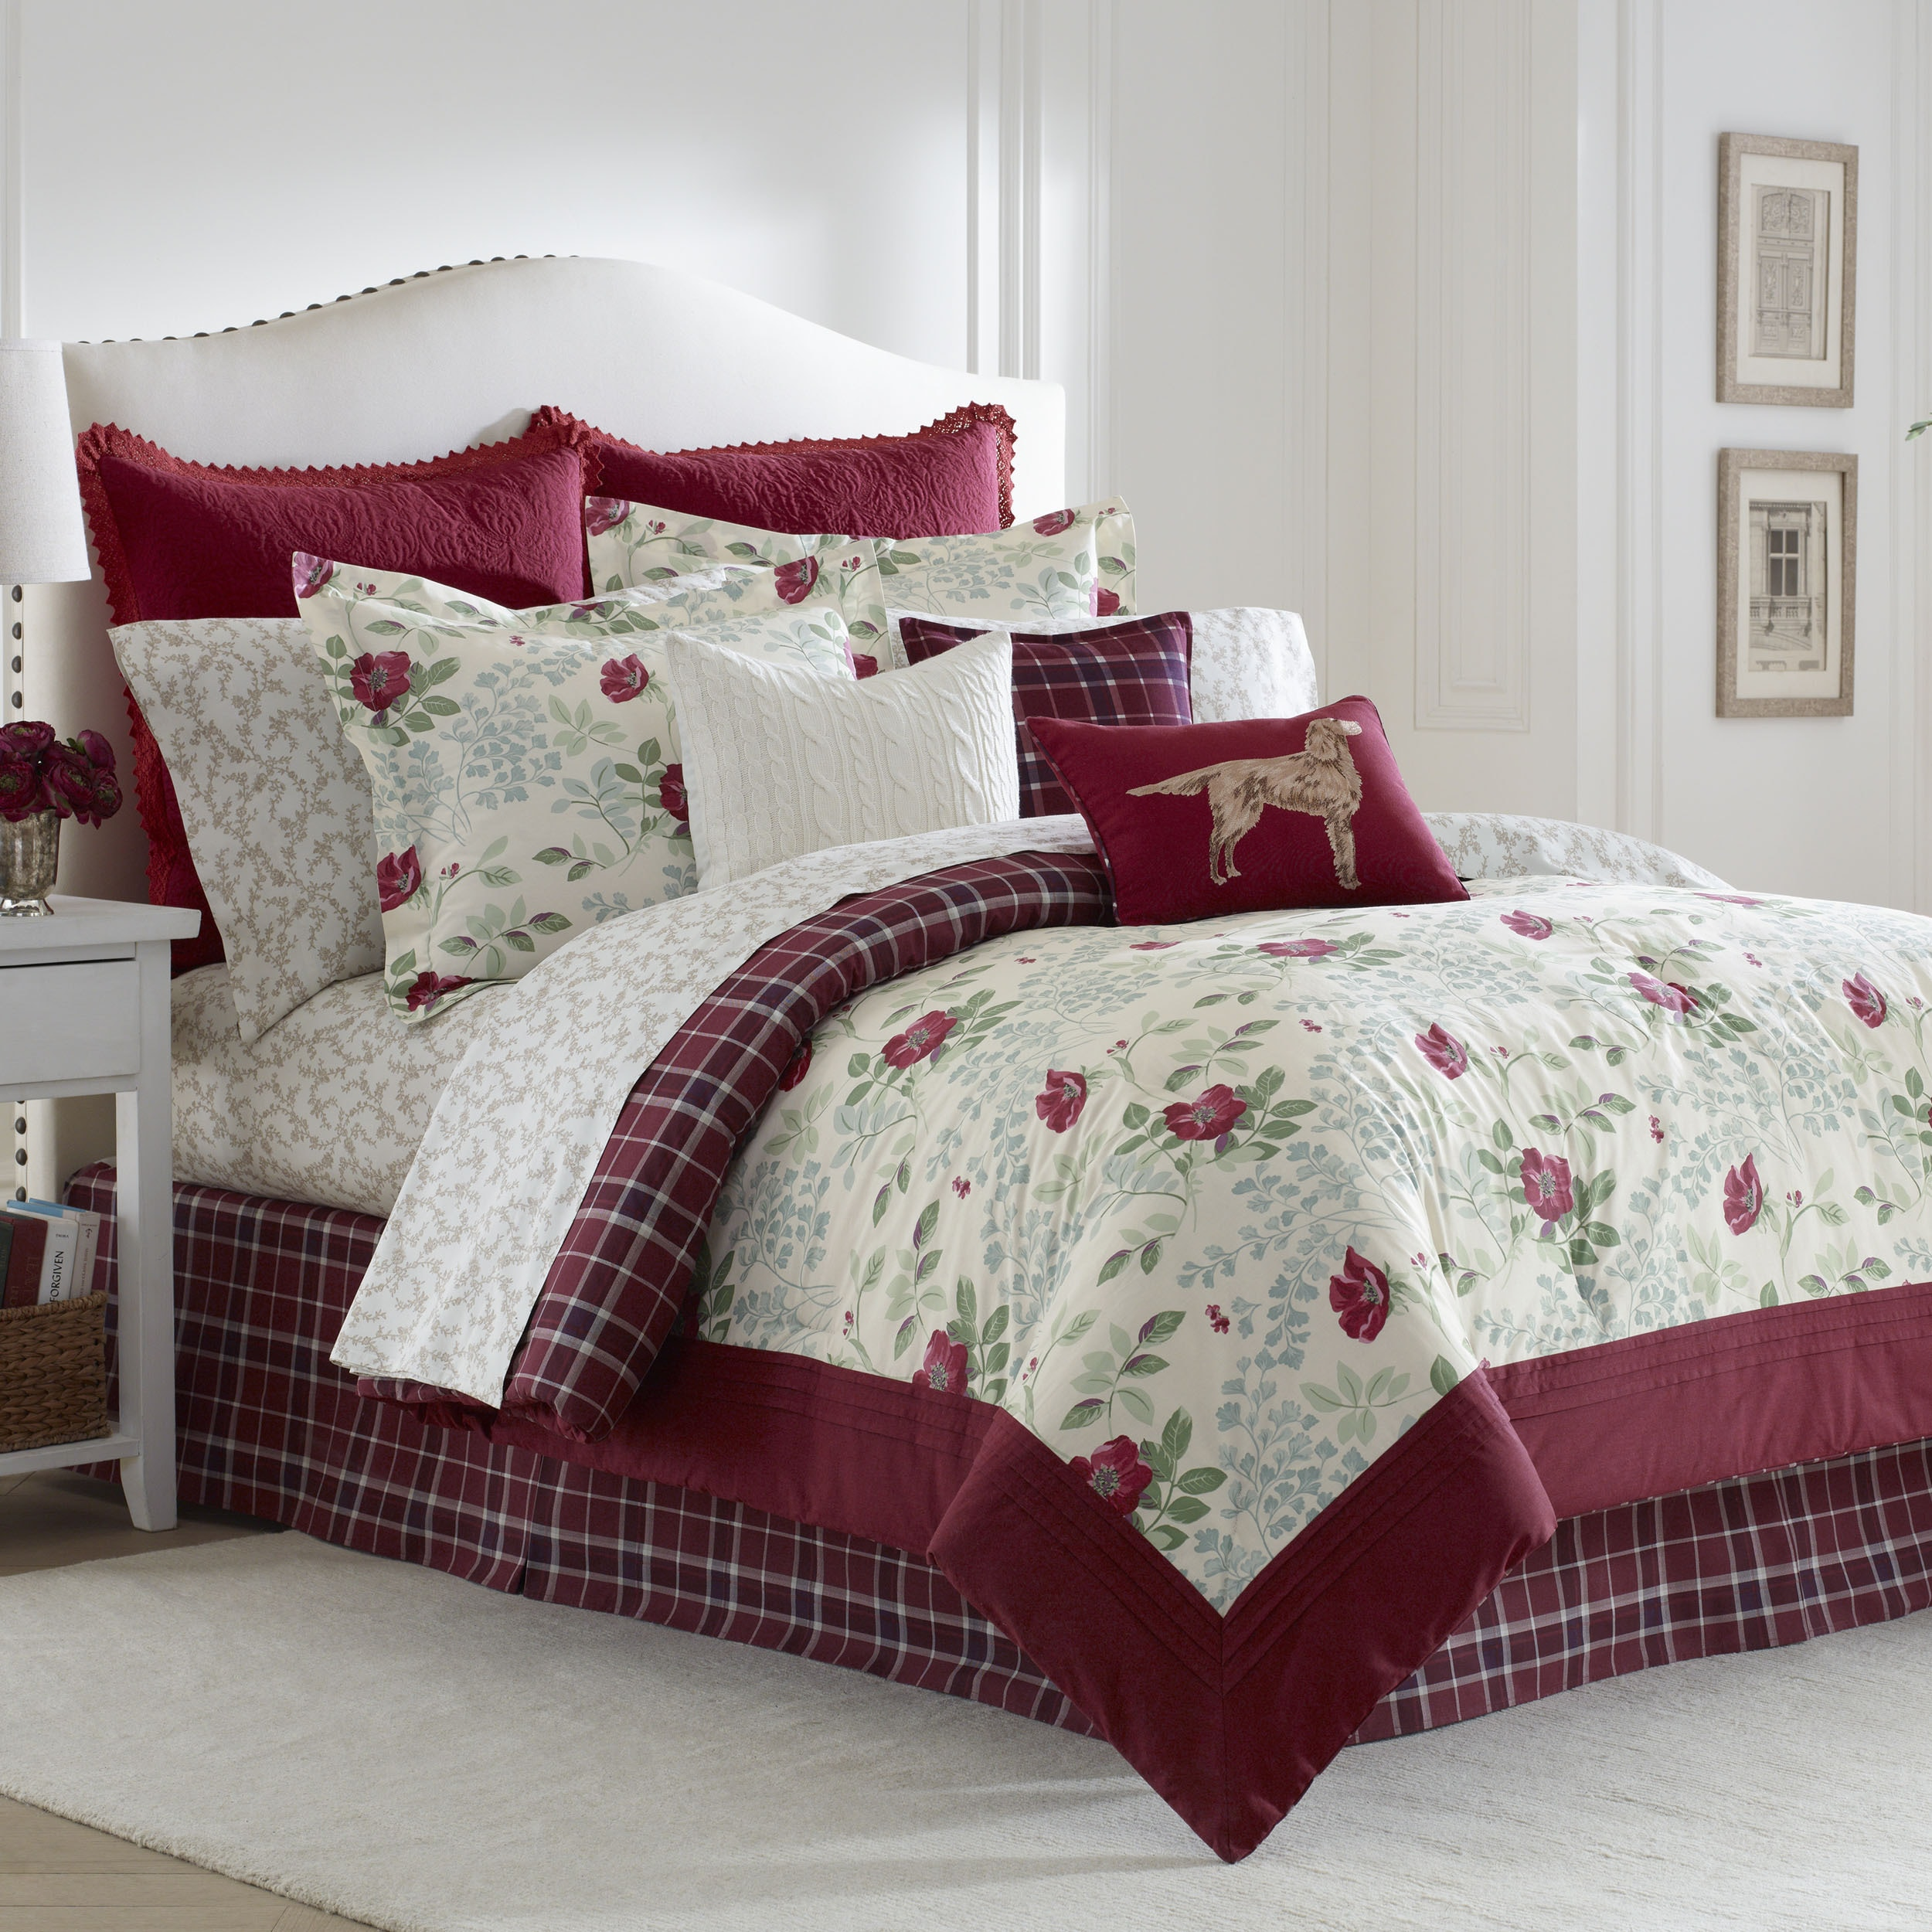 Laura Ashley Ella Cotton 4-pc Comforter Set